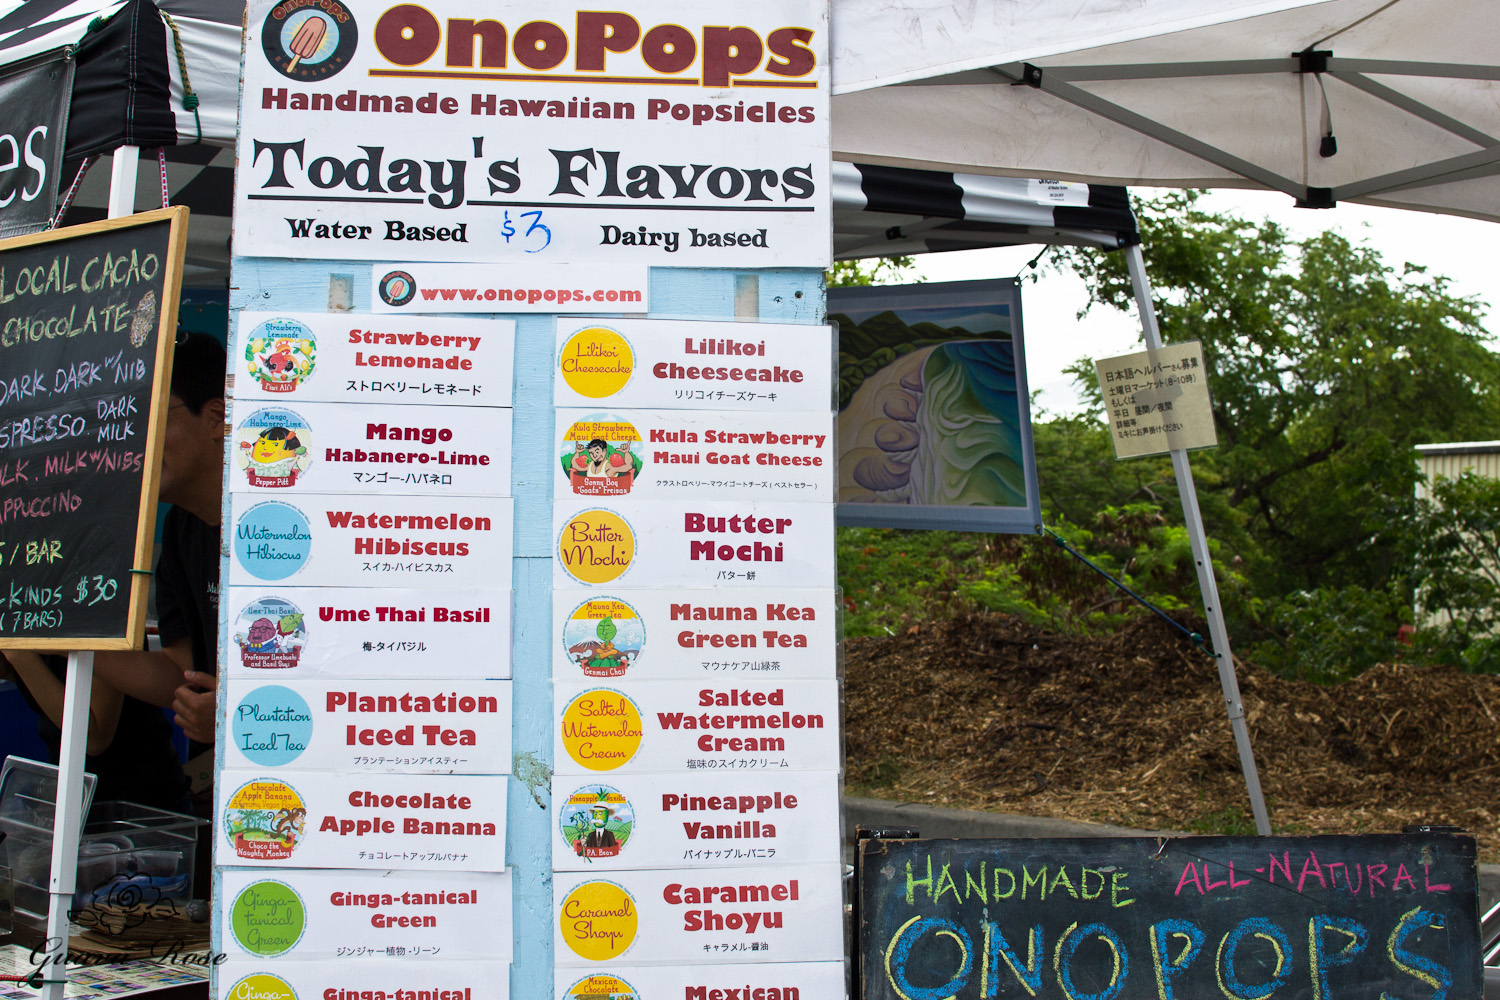 Ono pops flavors sign